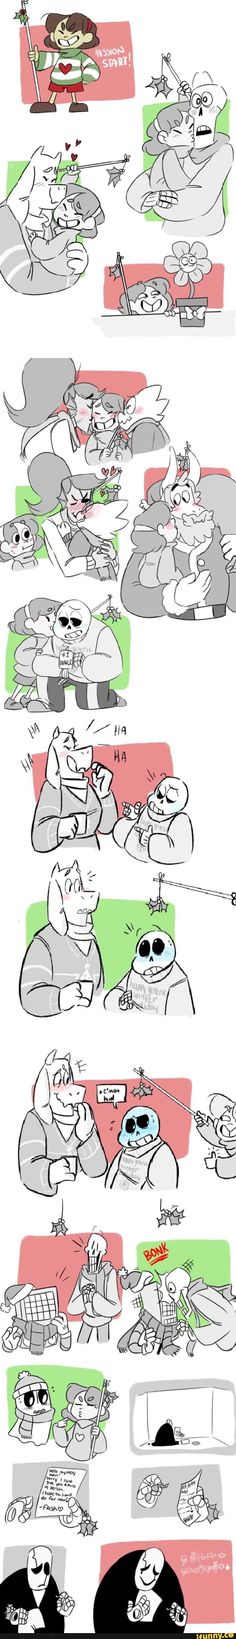 undertale---Papyrus's expressions here give me life. Who's the artist so I can hug the life out of them?